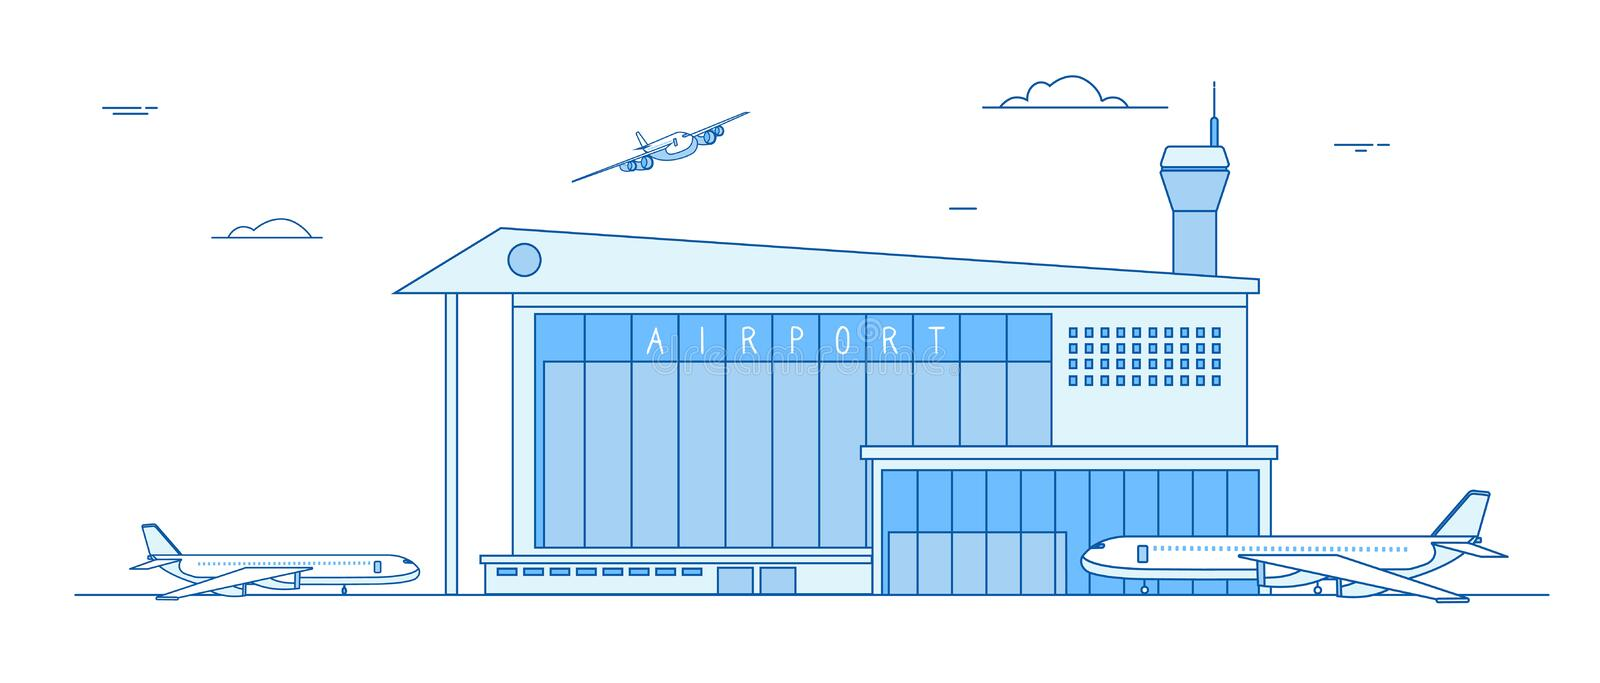 Airport buildings. Landing airplanes international terminal building aircraft runway business cargo transportation line vector illustration